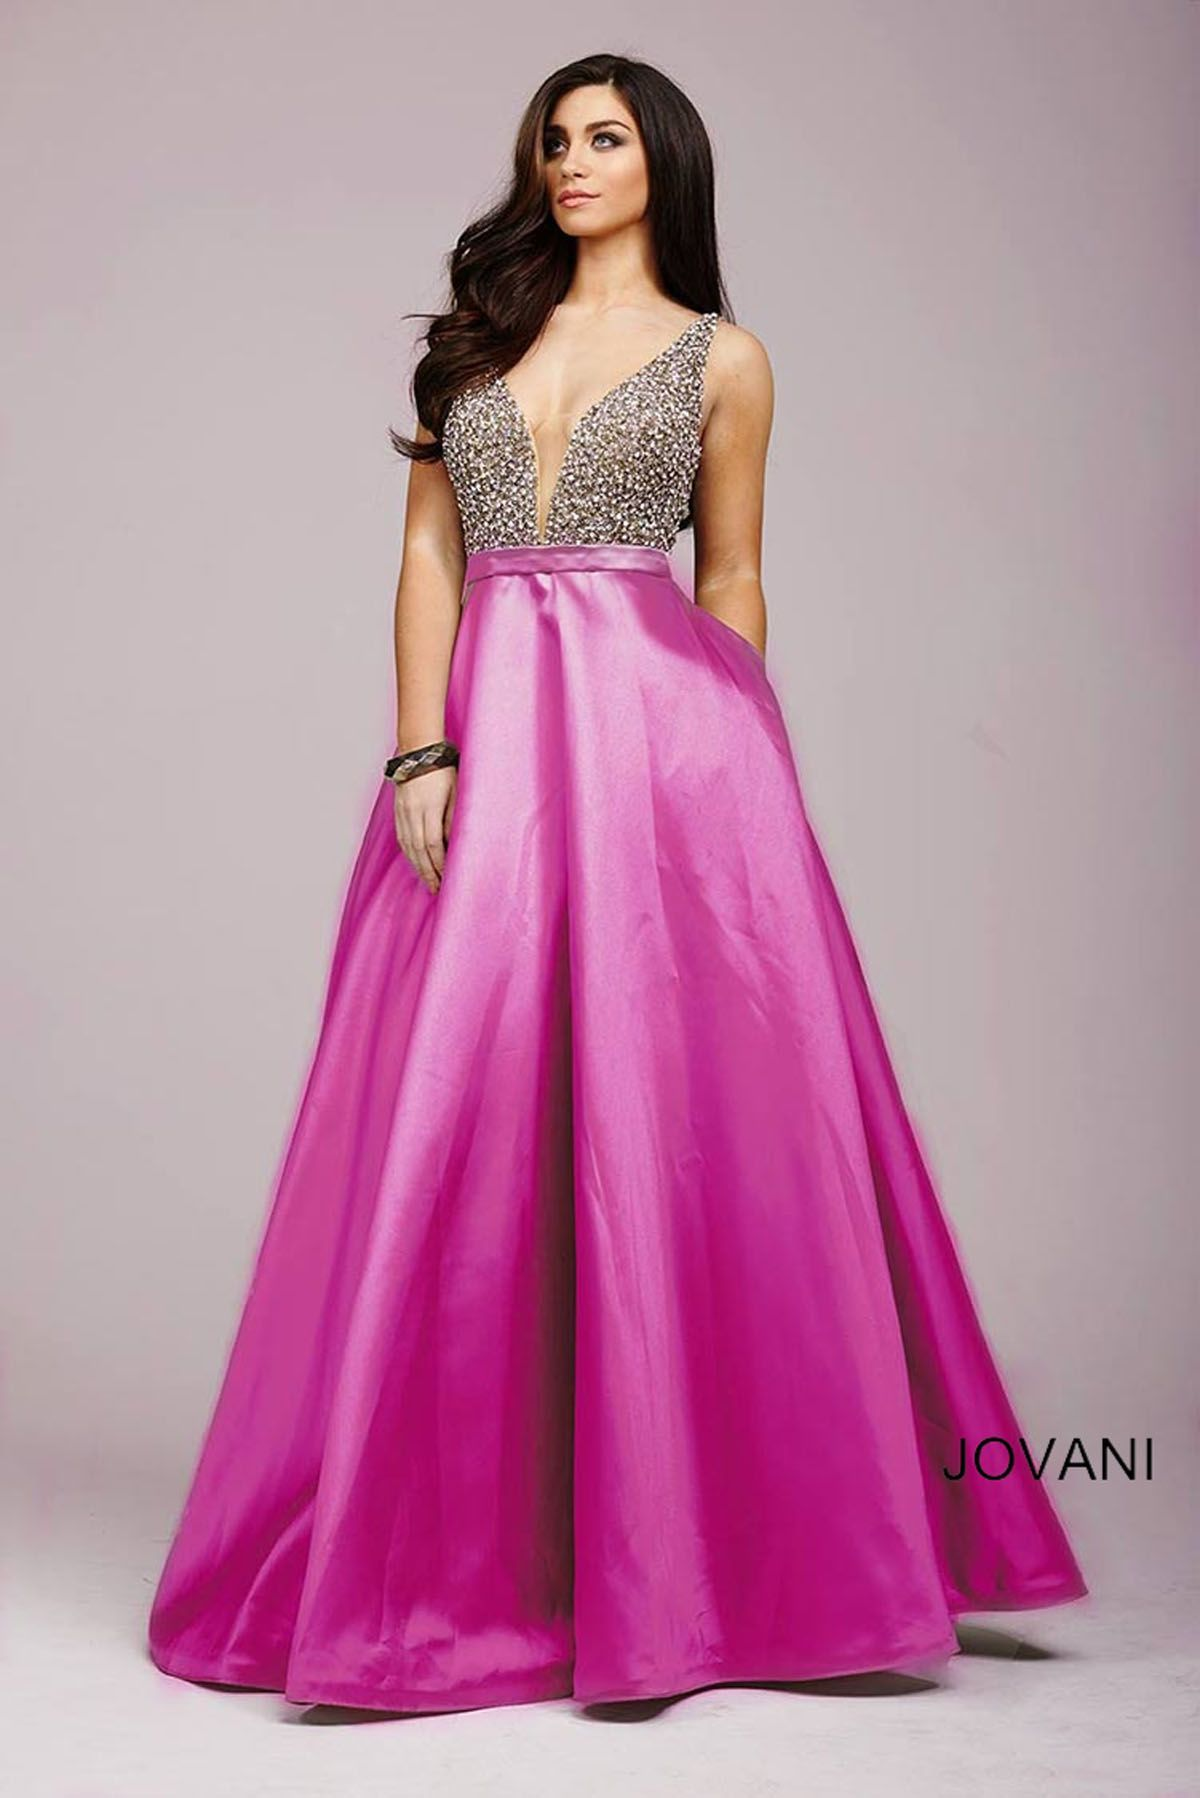 Jovani 32609 - International Prom Association | Jovani Prom Dresses ...